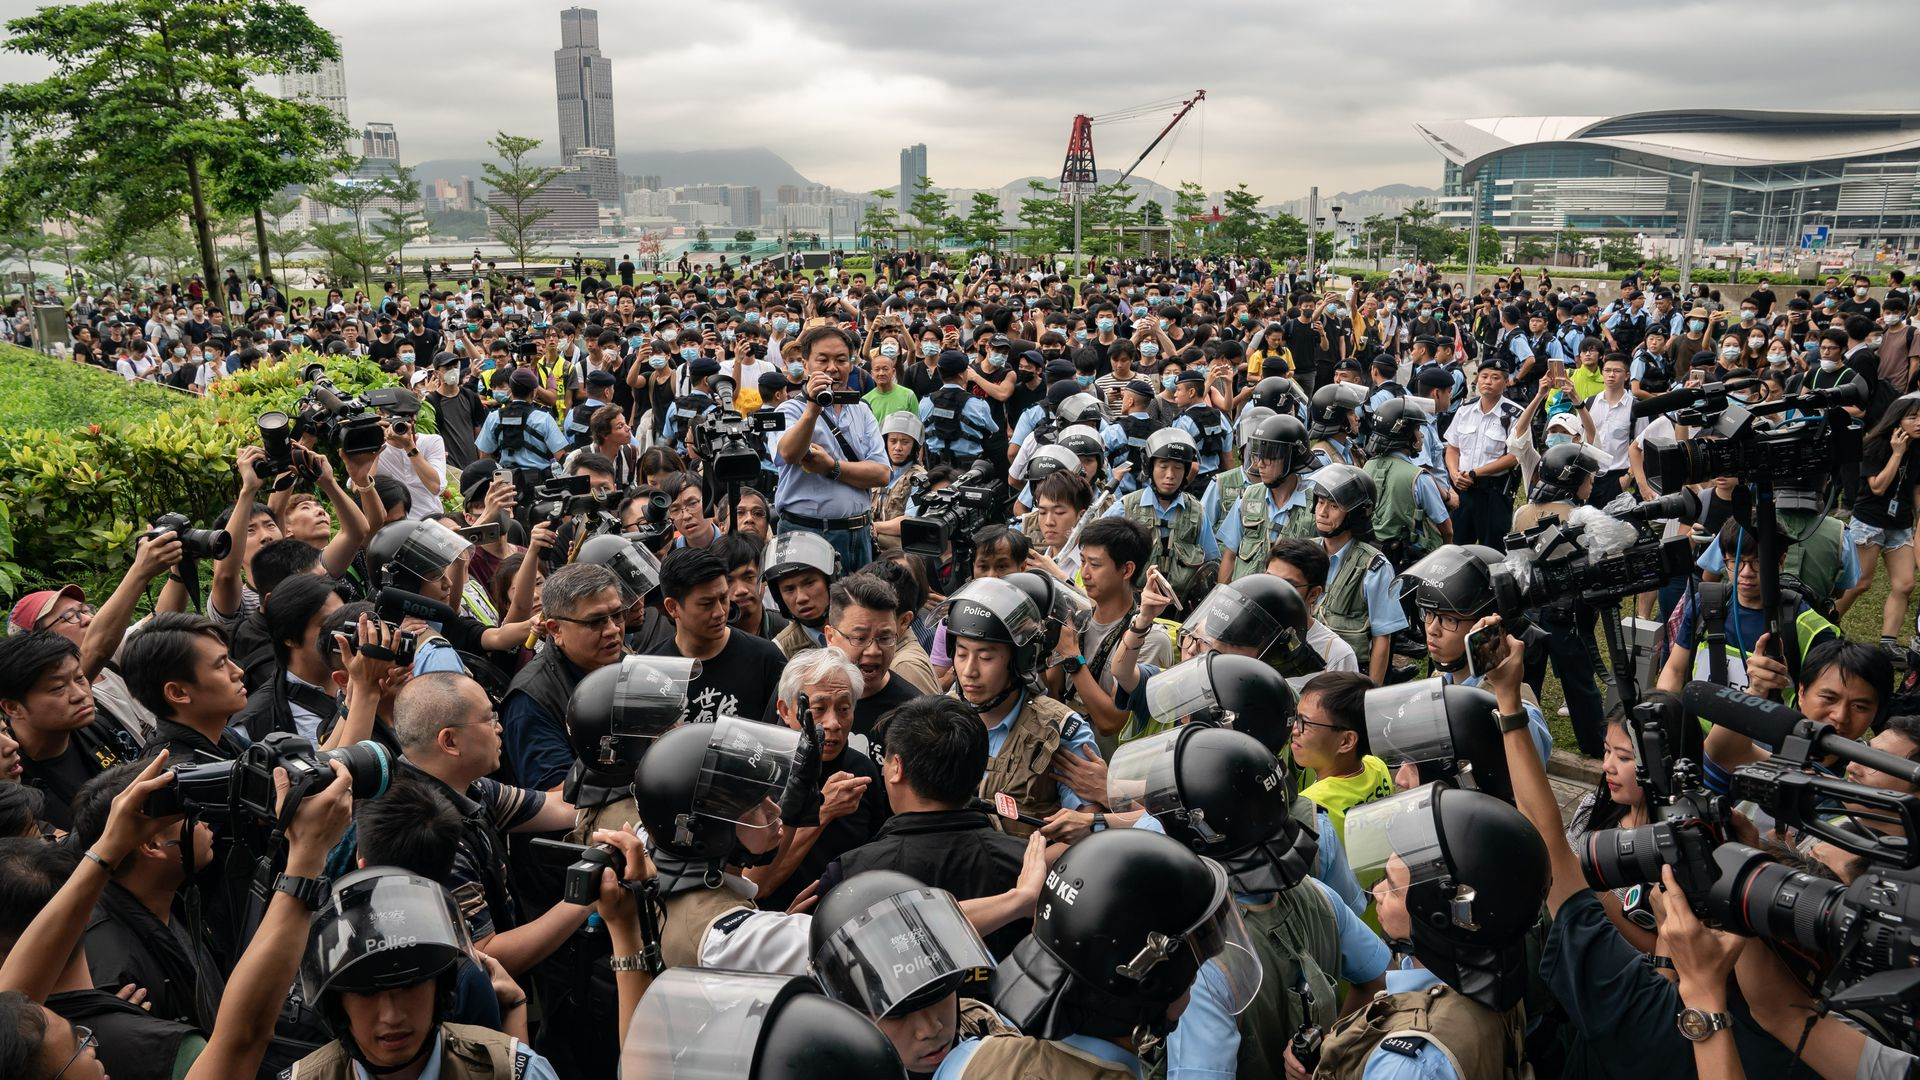 esidents argue with police officers at the Tamar Park outside the Central Government Complex on June 13, 2019 in Hong Kong.